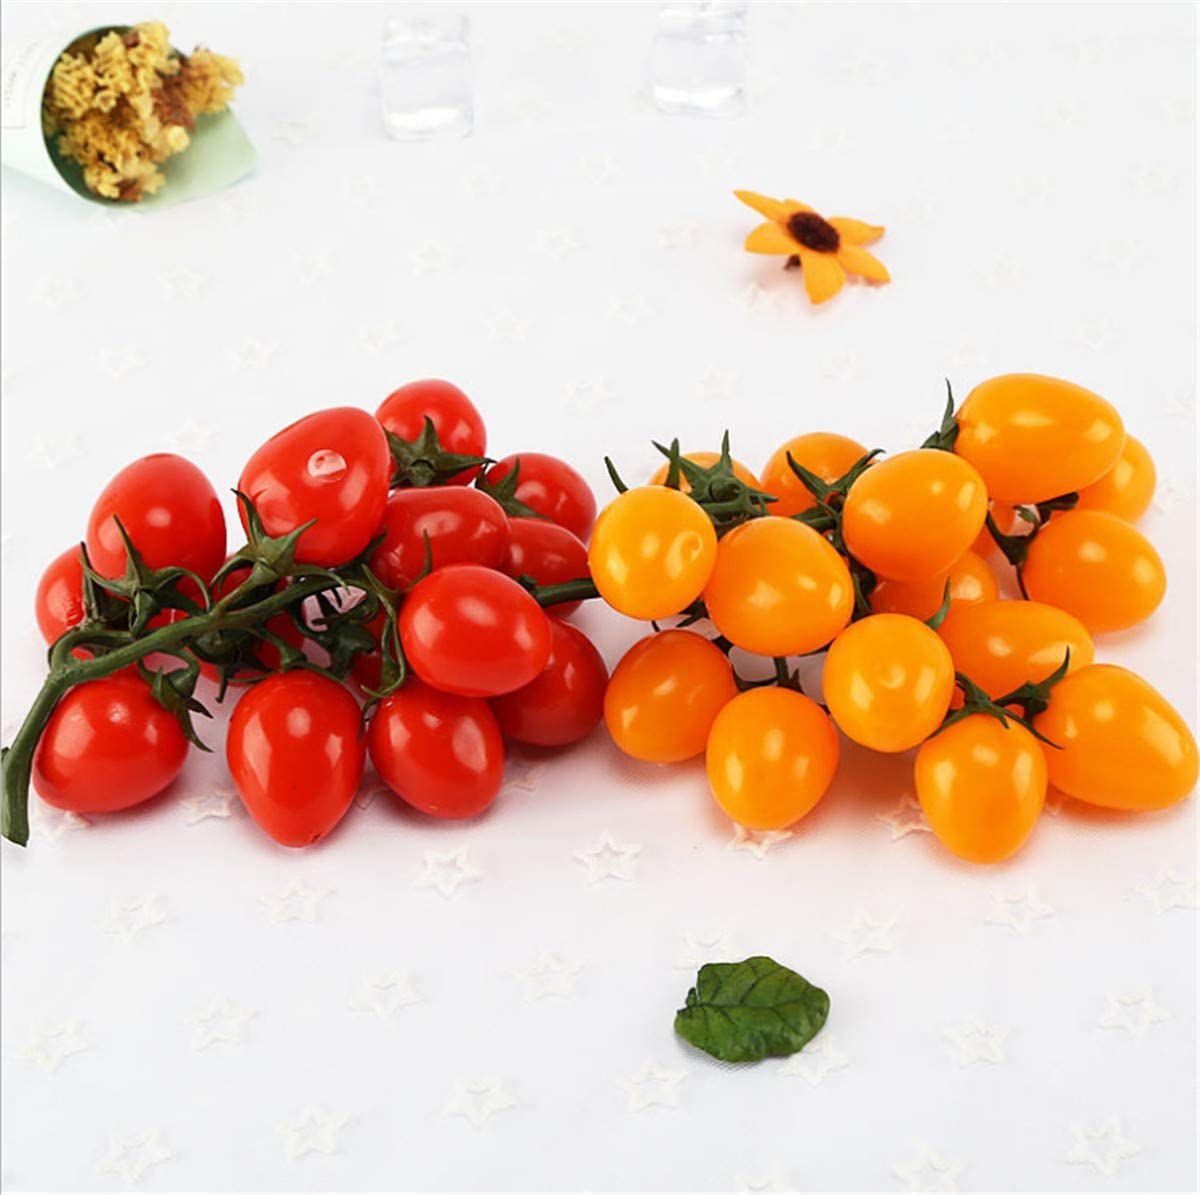 Zzooi 2PCS Artificial High Simulation Cherry Tomatoes Display Props Faux Cherry Tomatoes Cabinet Showcase Decor